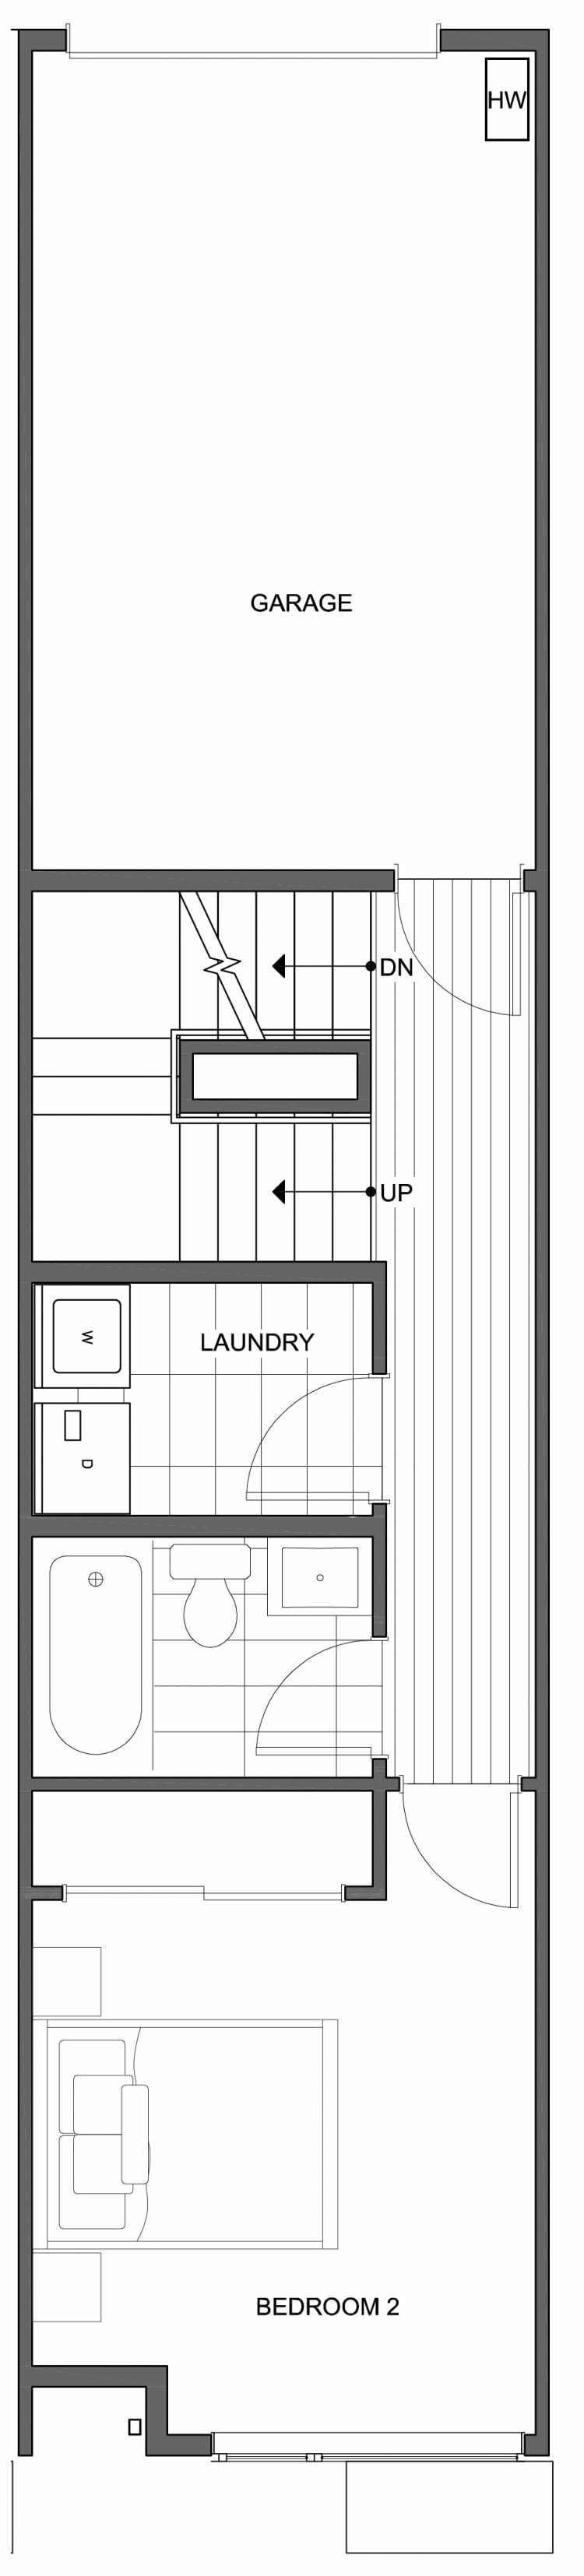 Second Floor Plan of 806A N 46th St, One of the Nino 15 East Townhomes by Isola Homes